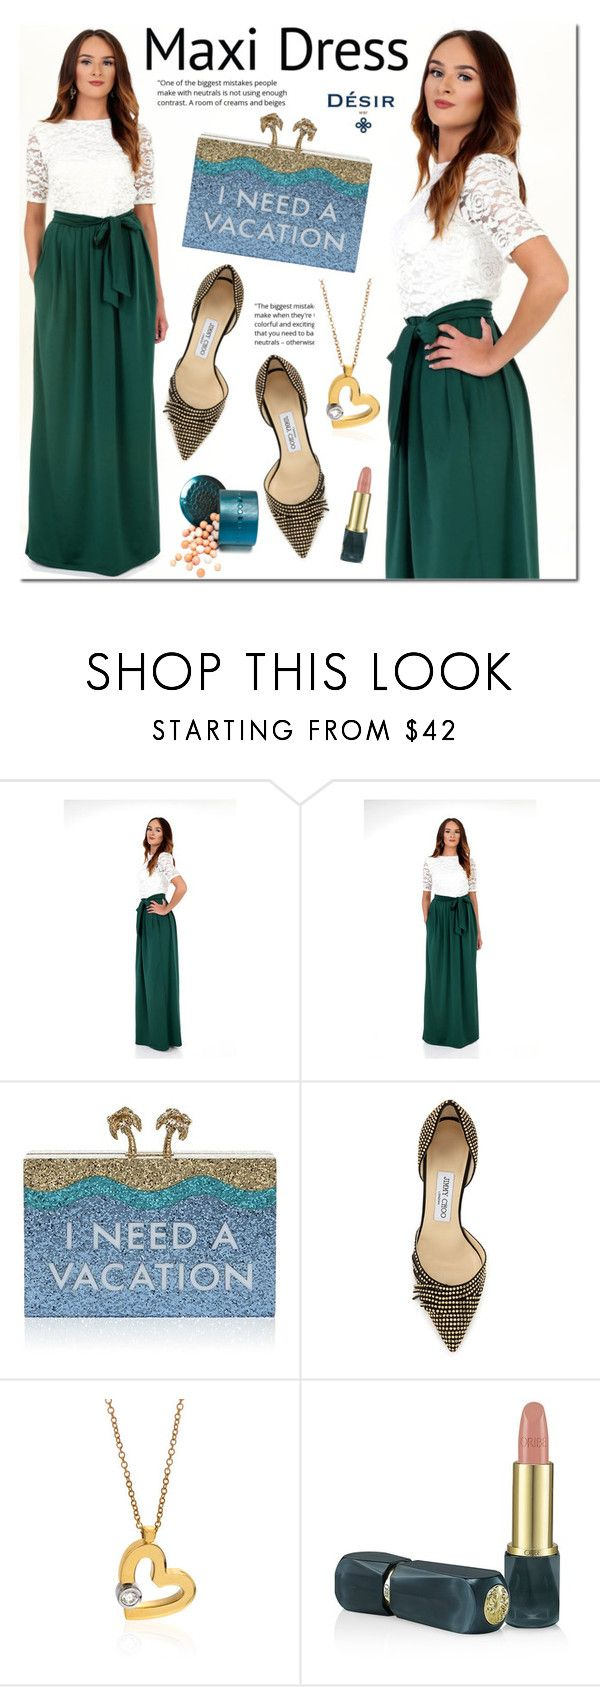 Desir Vale maxi dress by mada-malureanu on Polyvore featuring Jimmy Choo, Kate Spade, Roberto Coin, Oribe, dress, maxidress, summerstyle, dreamydress and DesirVale